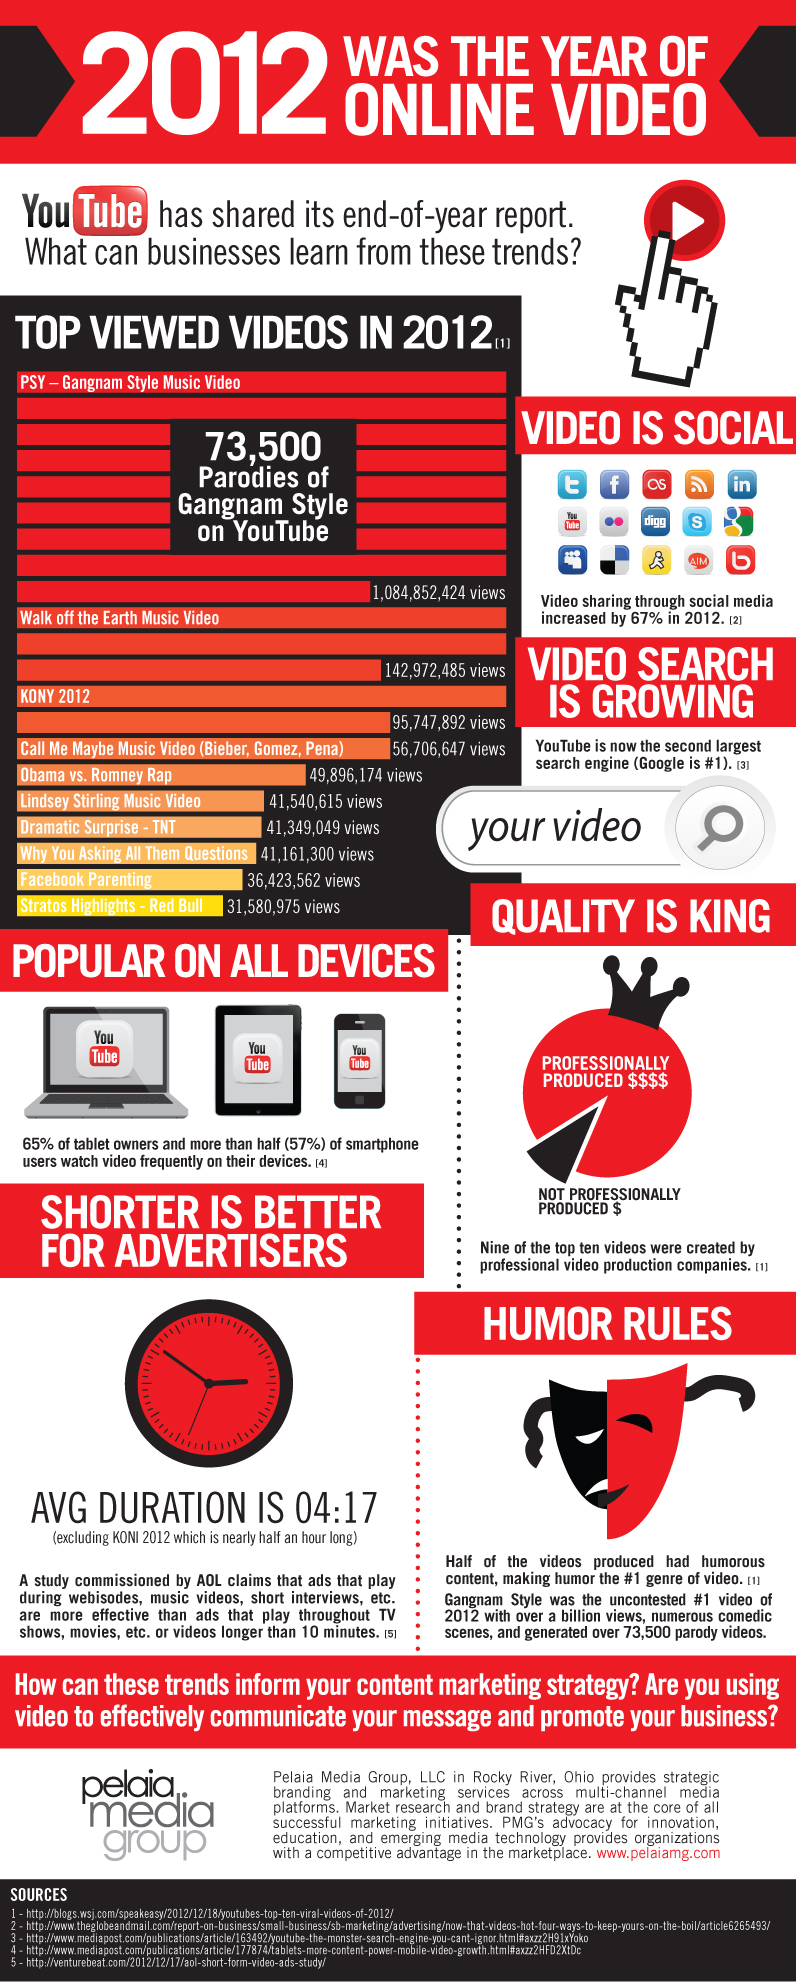 pmg-video-video-infographic-02-2012.jpg